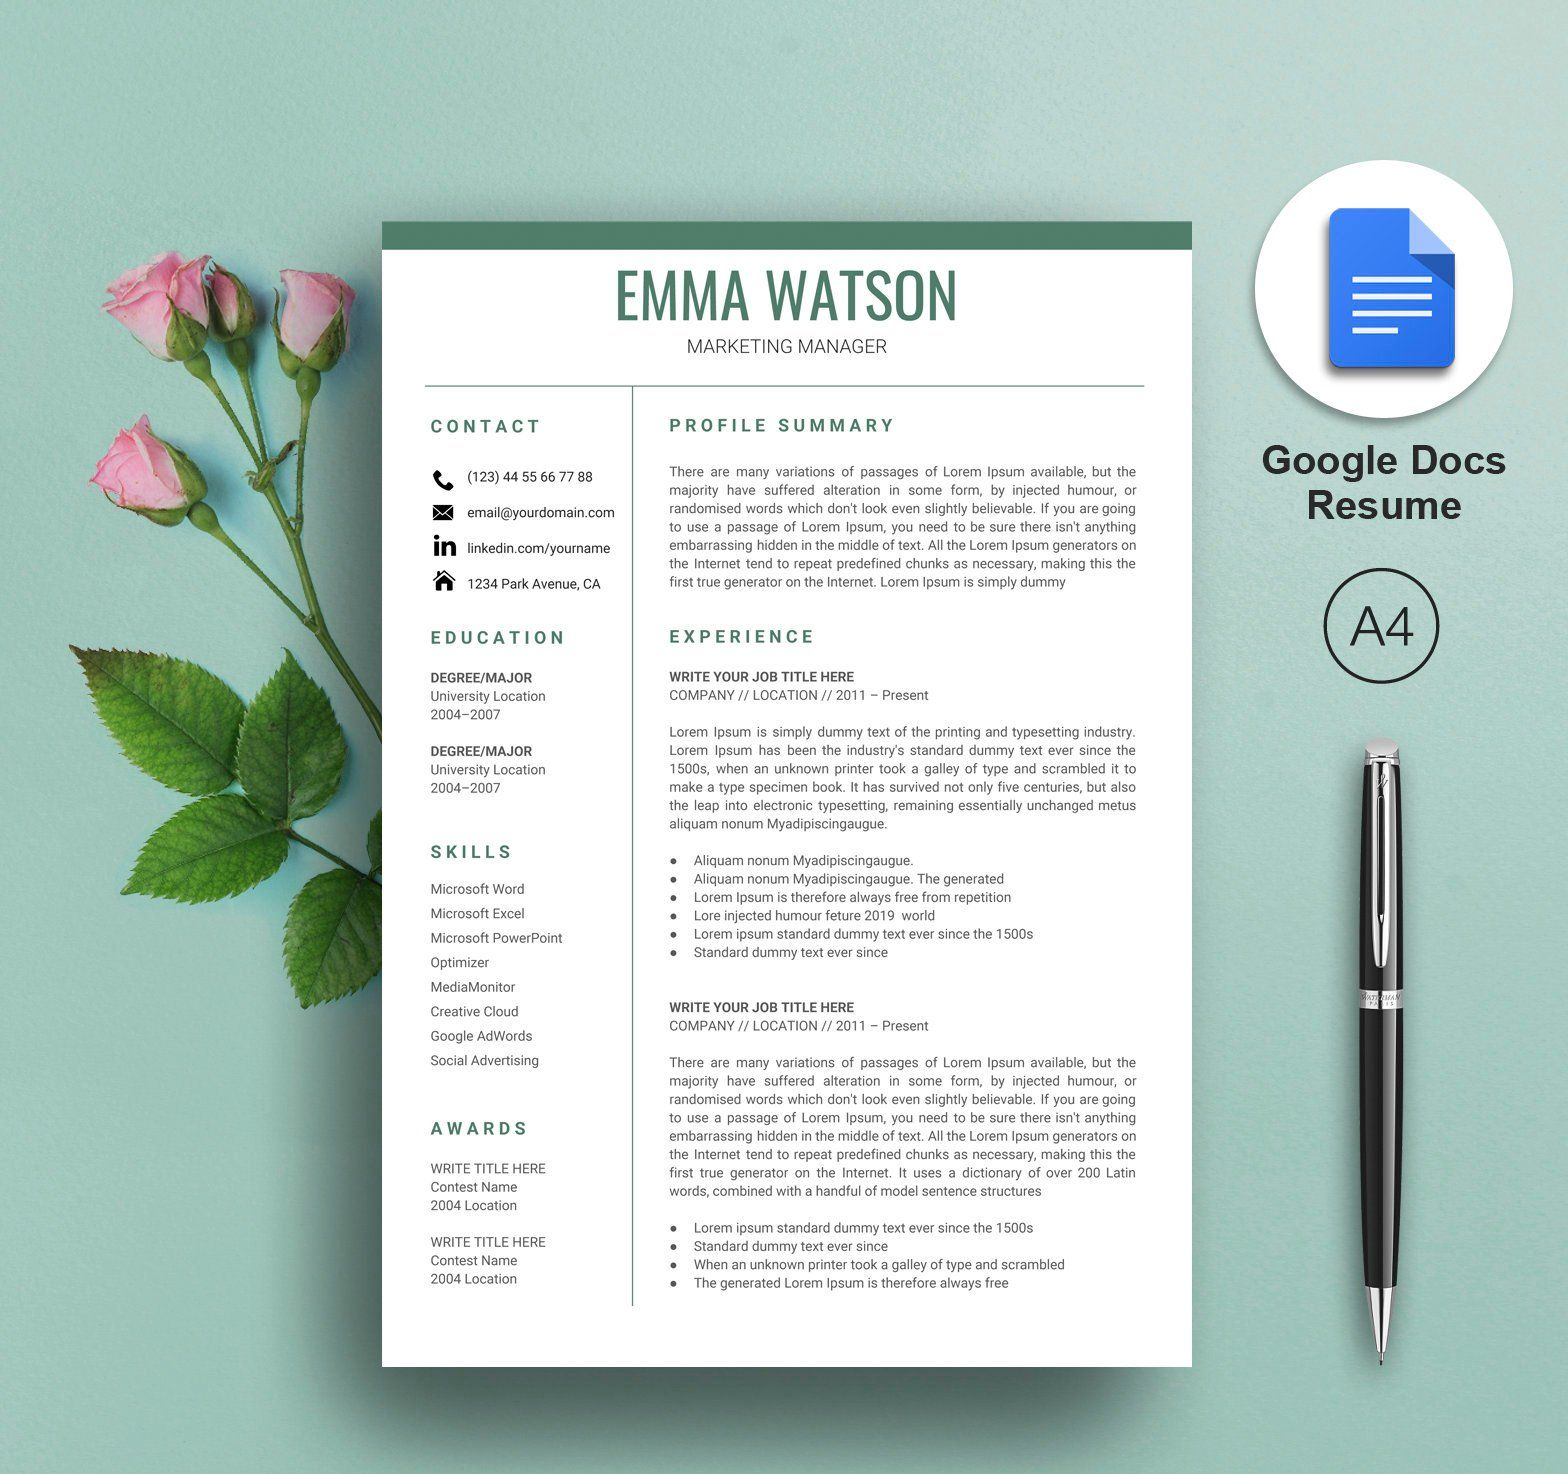 Resume Template Google Docs, Google Docs Resume Template